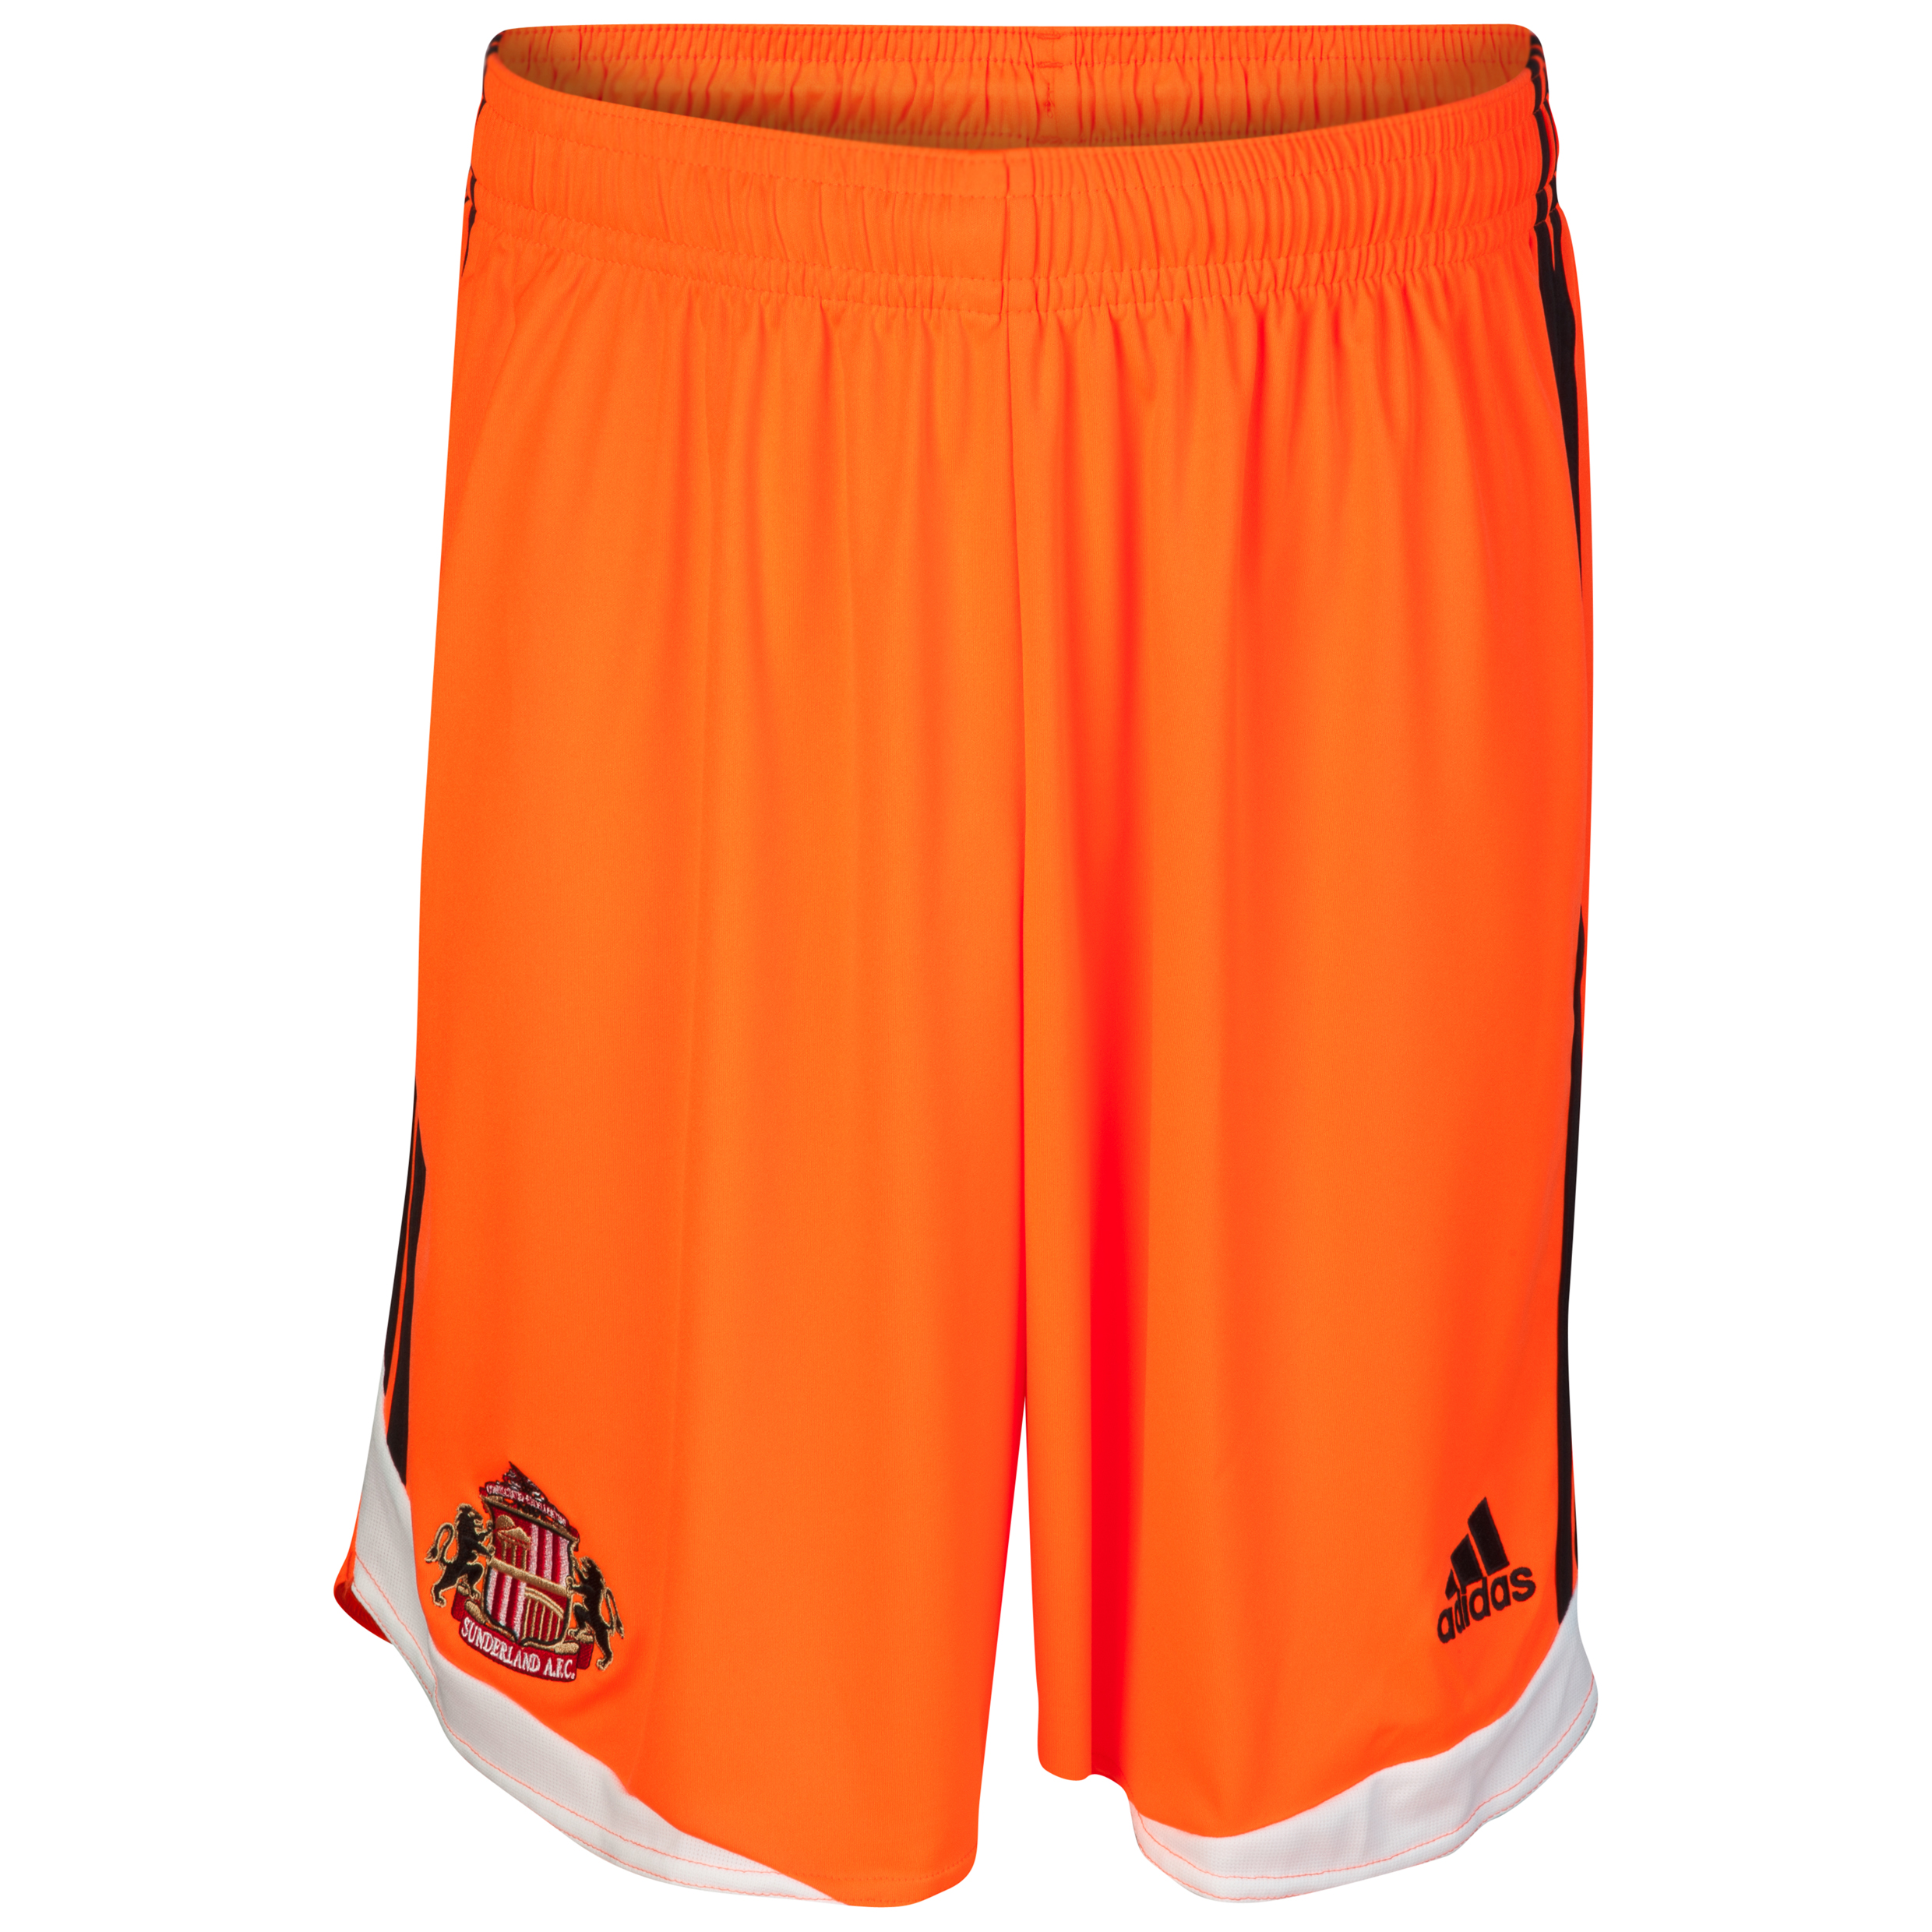 Sunderland Away GoalKeeper Short 2012/13